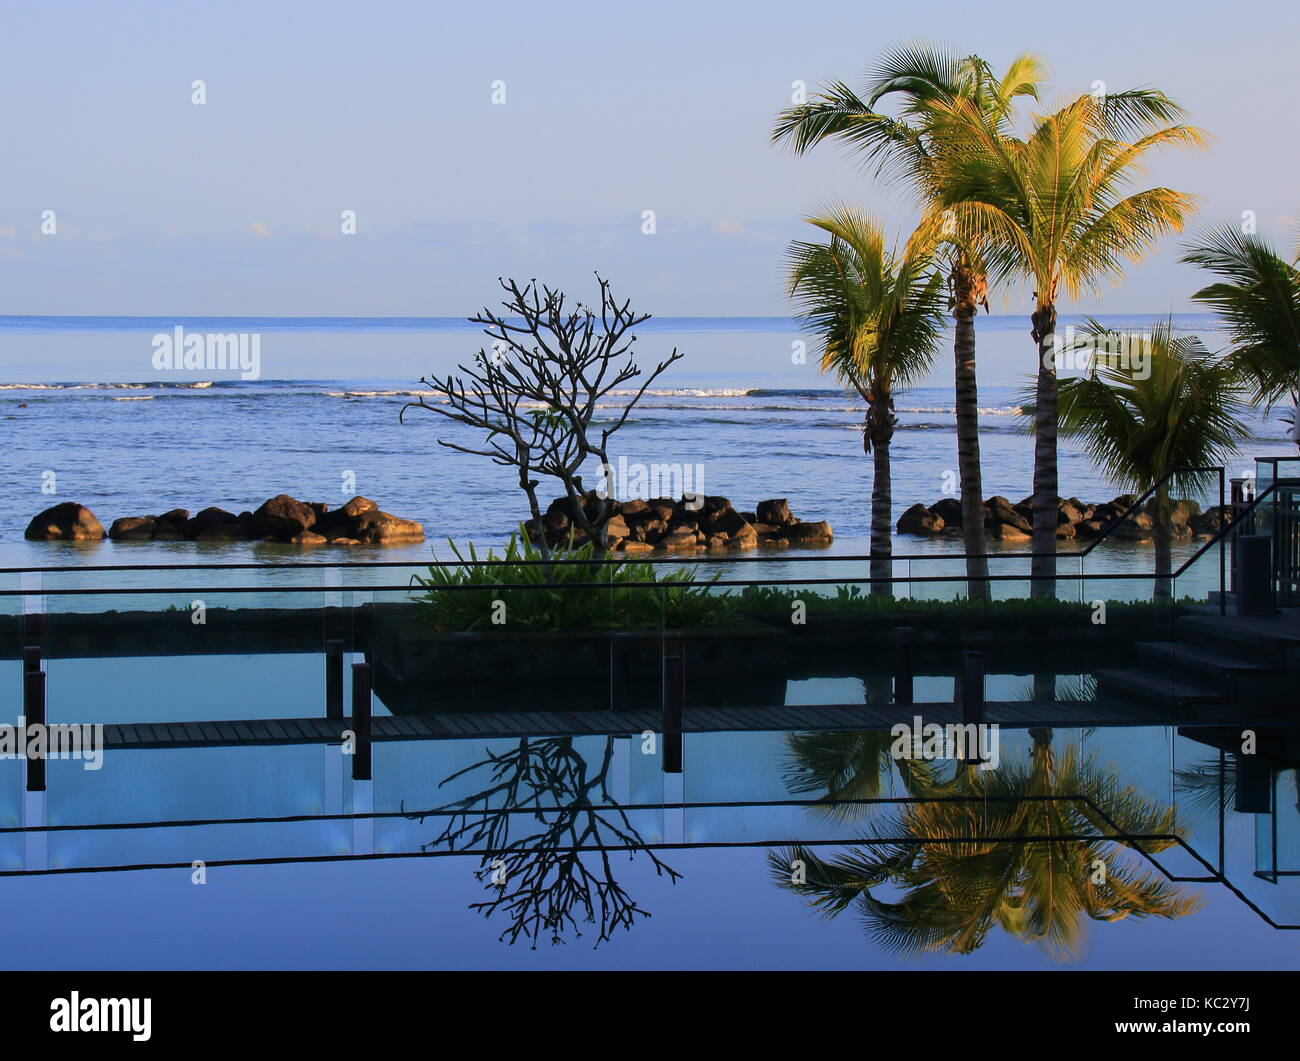 Balaclava, Mauritius - lifestyle images of the Westin Turtle Bay Resort and Spa on the island - Stock Image